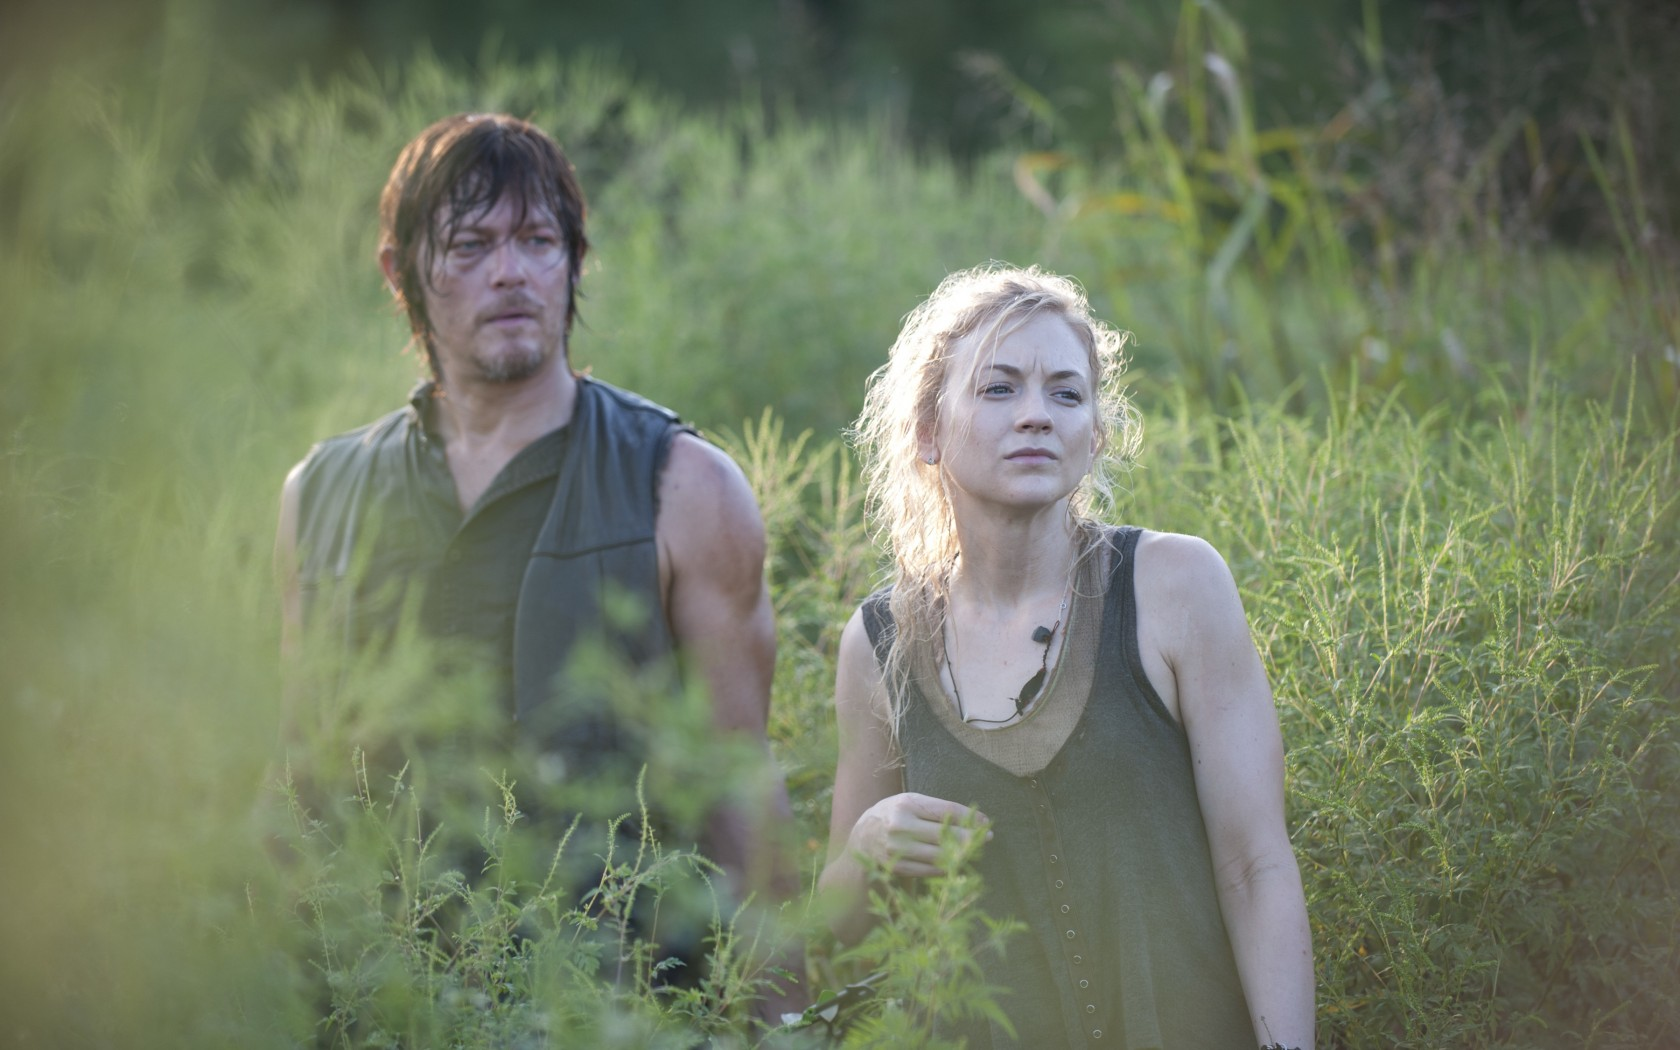 daryl and beth dating walking dead Daryl and beth from 'the walking dead' are reportedly dating in real life  daryl and beth from 'the walking dead' are reportedly dating in real life profile by: vice4life.